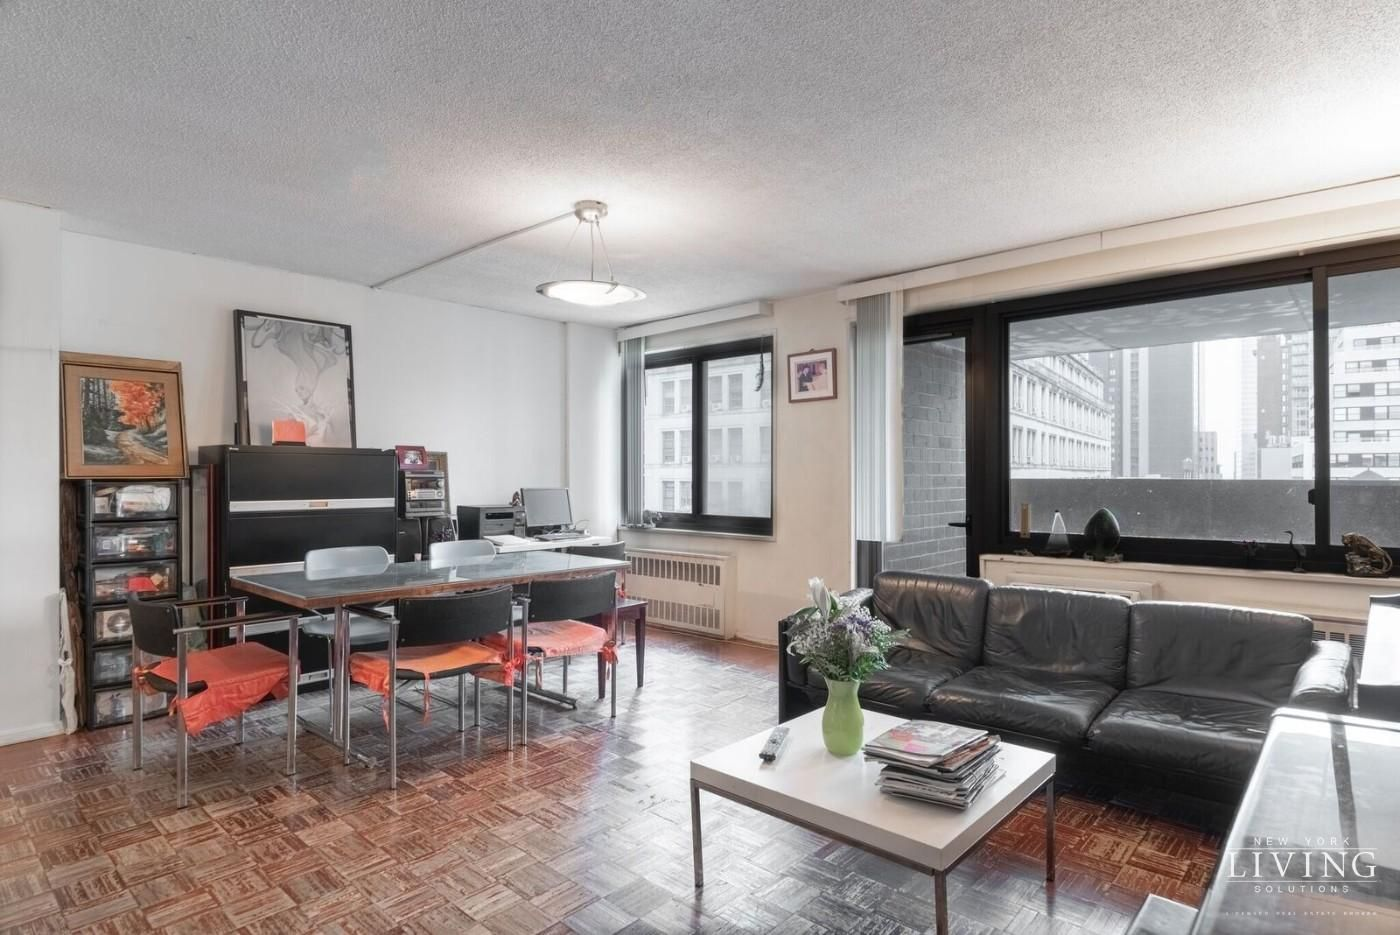 For Sale Residential 2 Bed, 1 Bath in New York, NY Huge